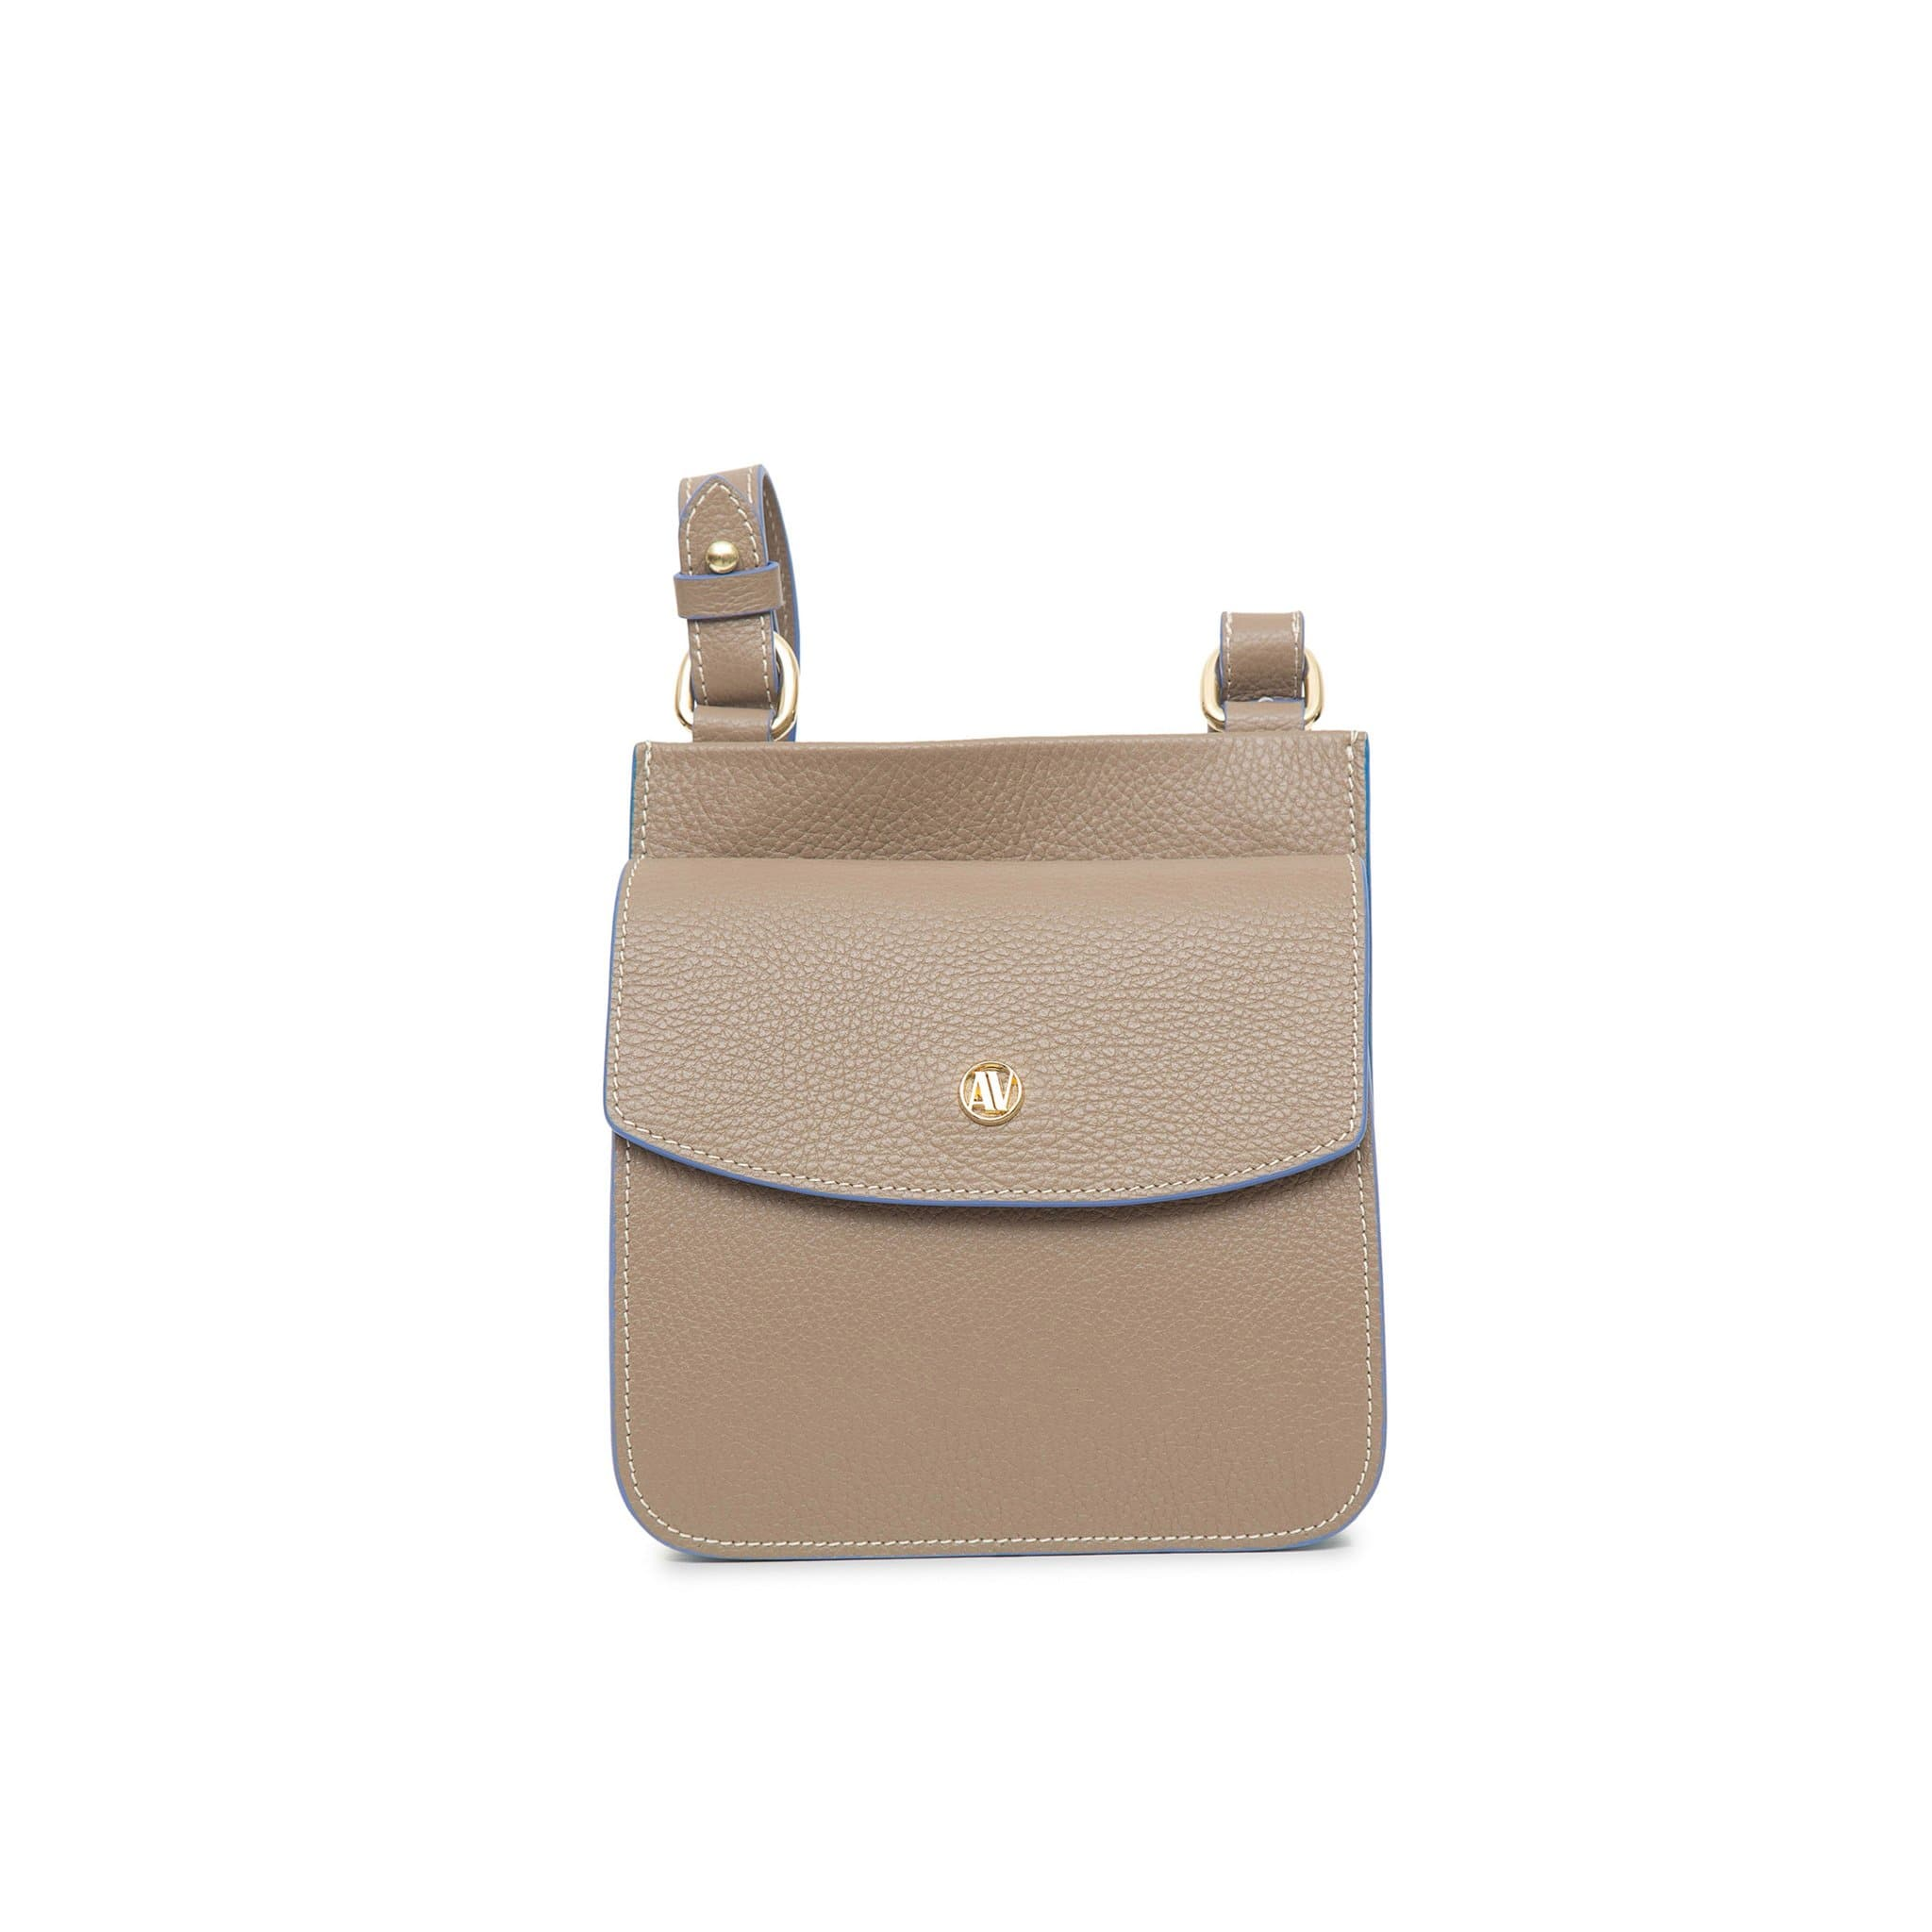 Lilia mini Evolution Handbag - Multi Taupe